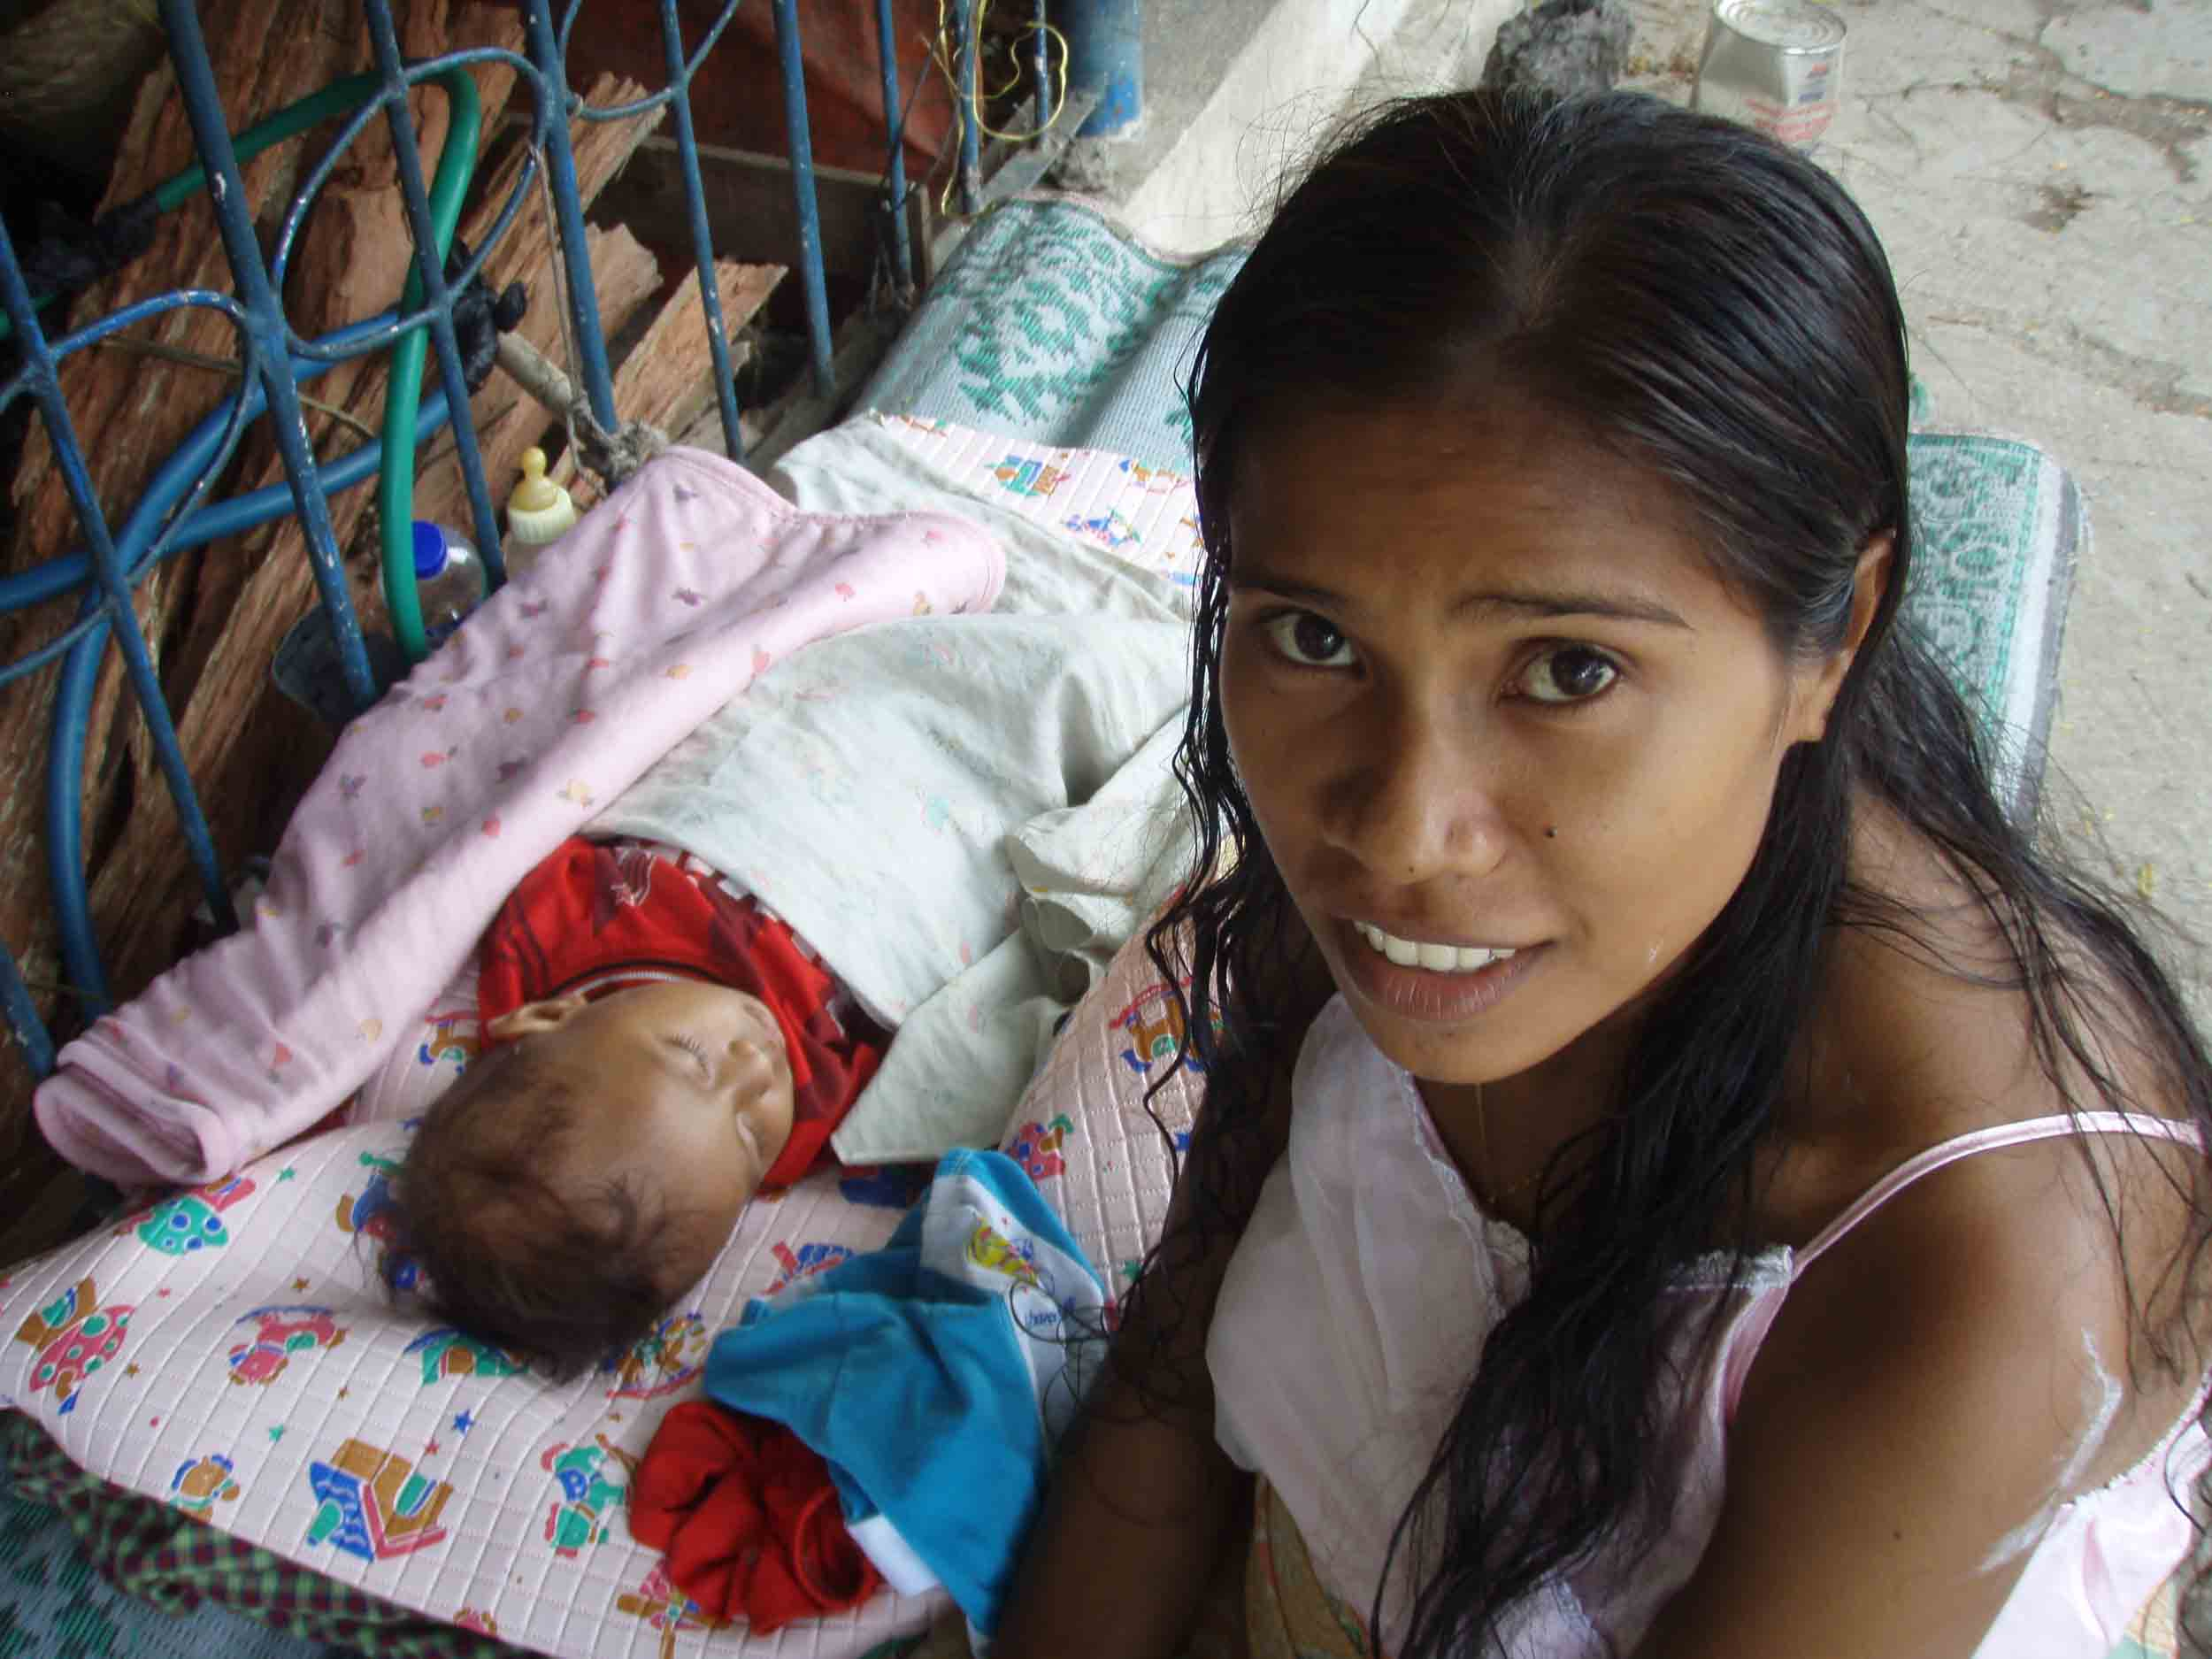 An IDP at Jardim camp in Dili. Her child was born at the camp.